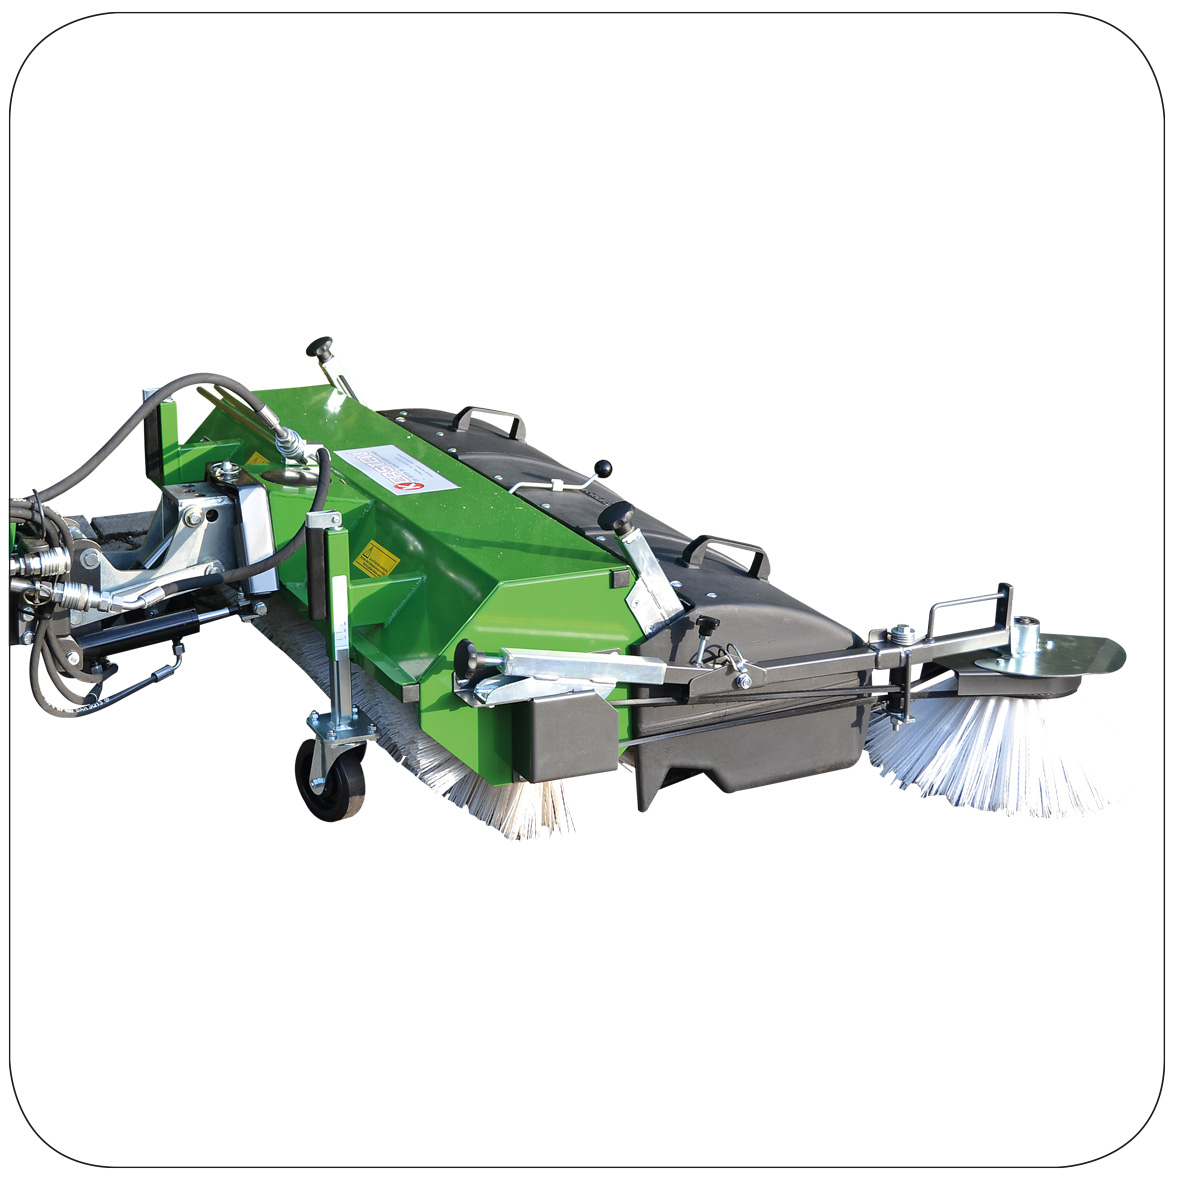 Kersten FKDR 37 Hydraulic Front Sweepers for Ride-on Mowers